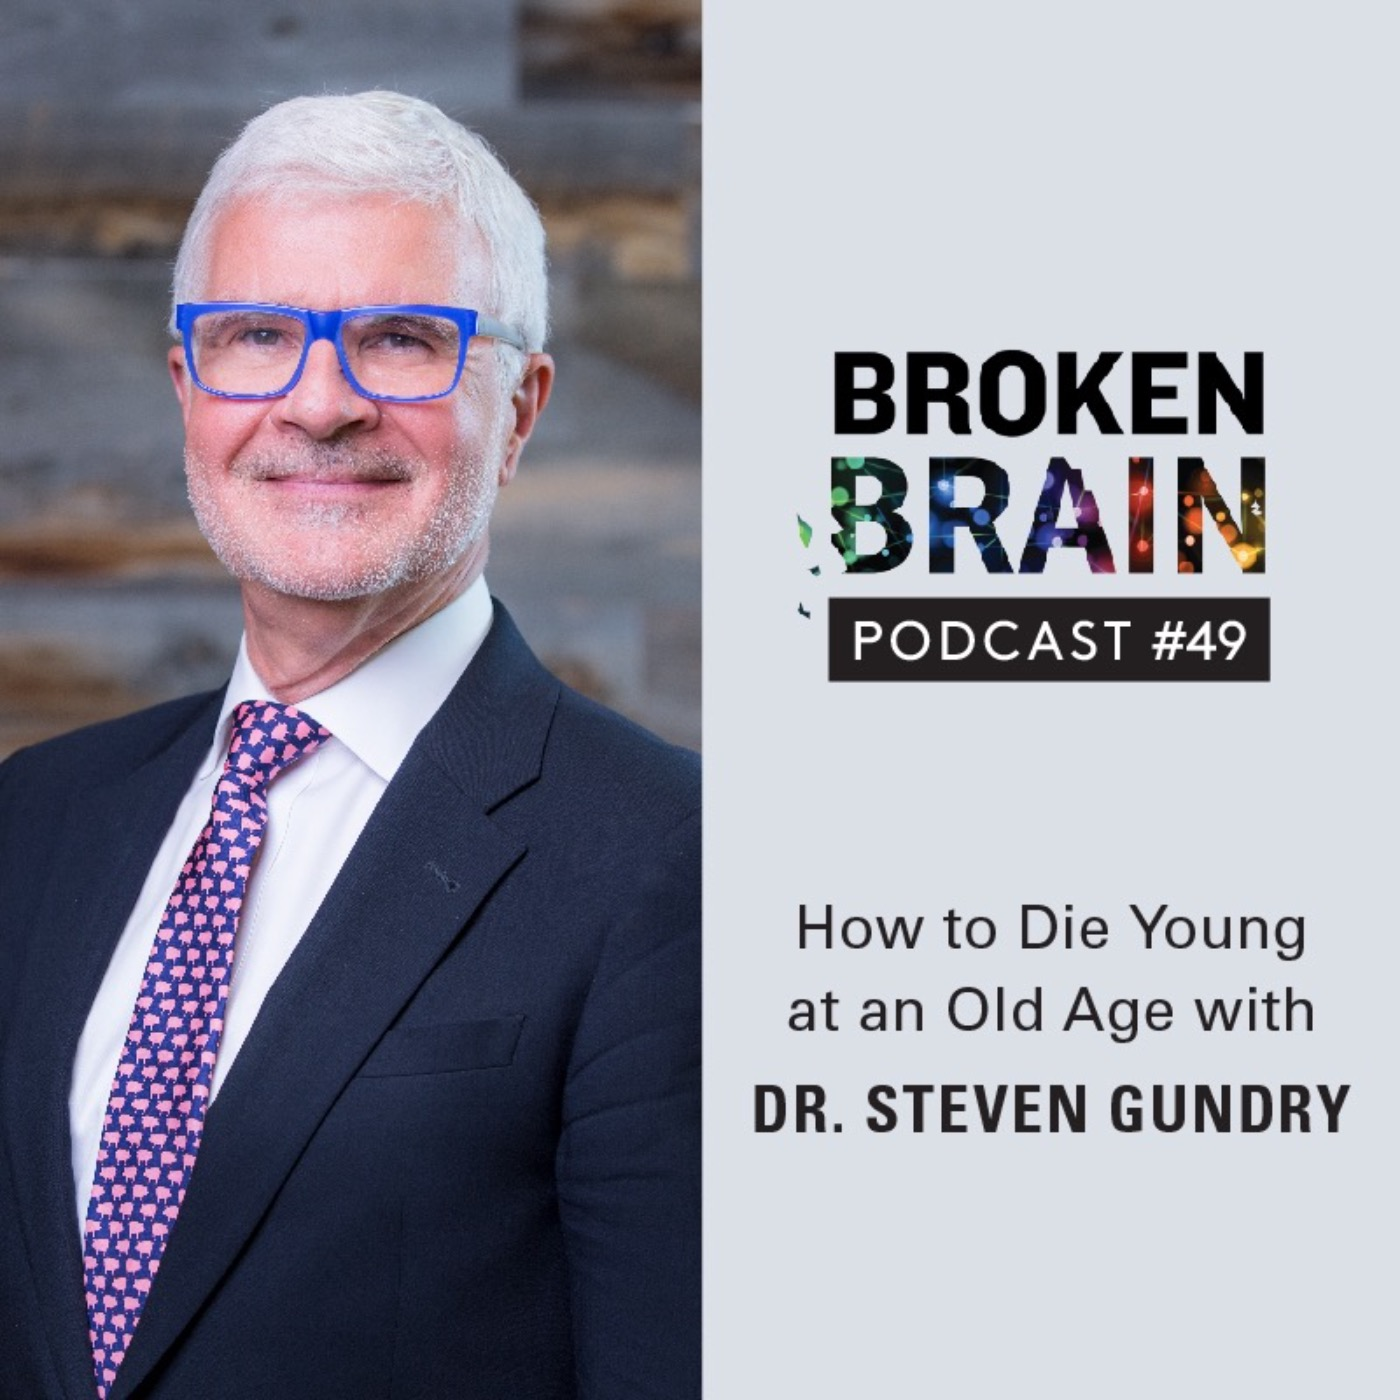 #49: How to Die Young at an Old Age with Dr. Steven Gundry